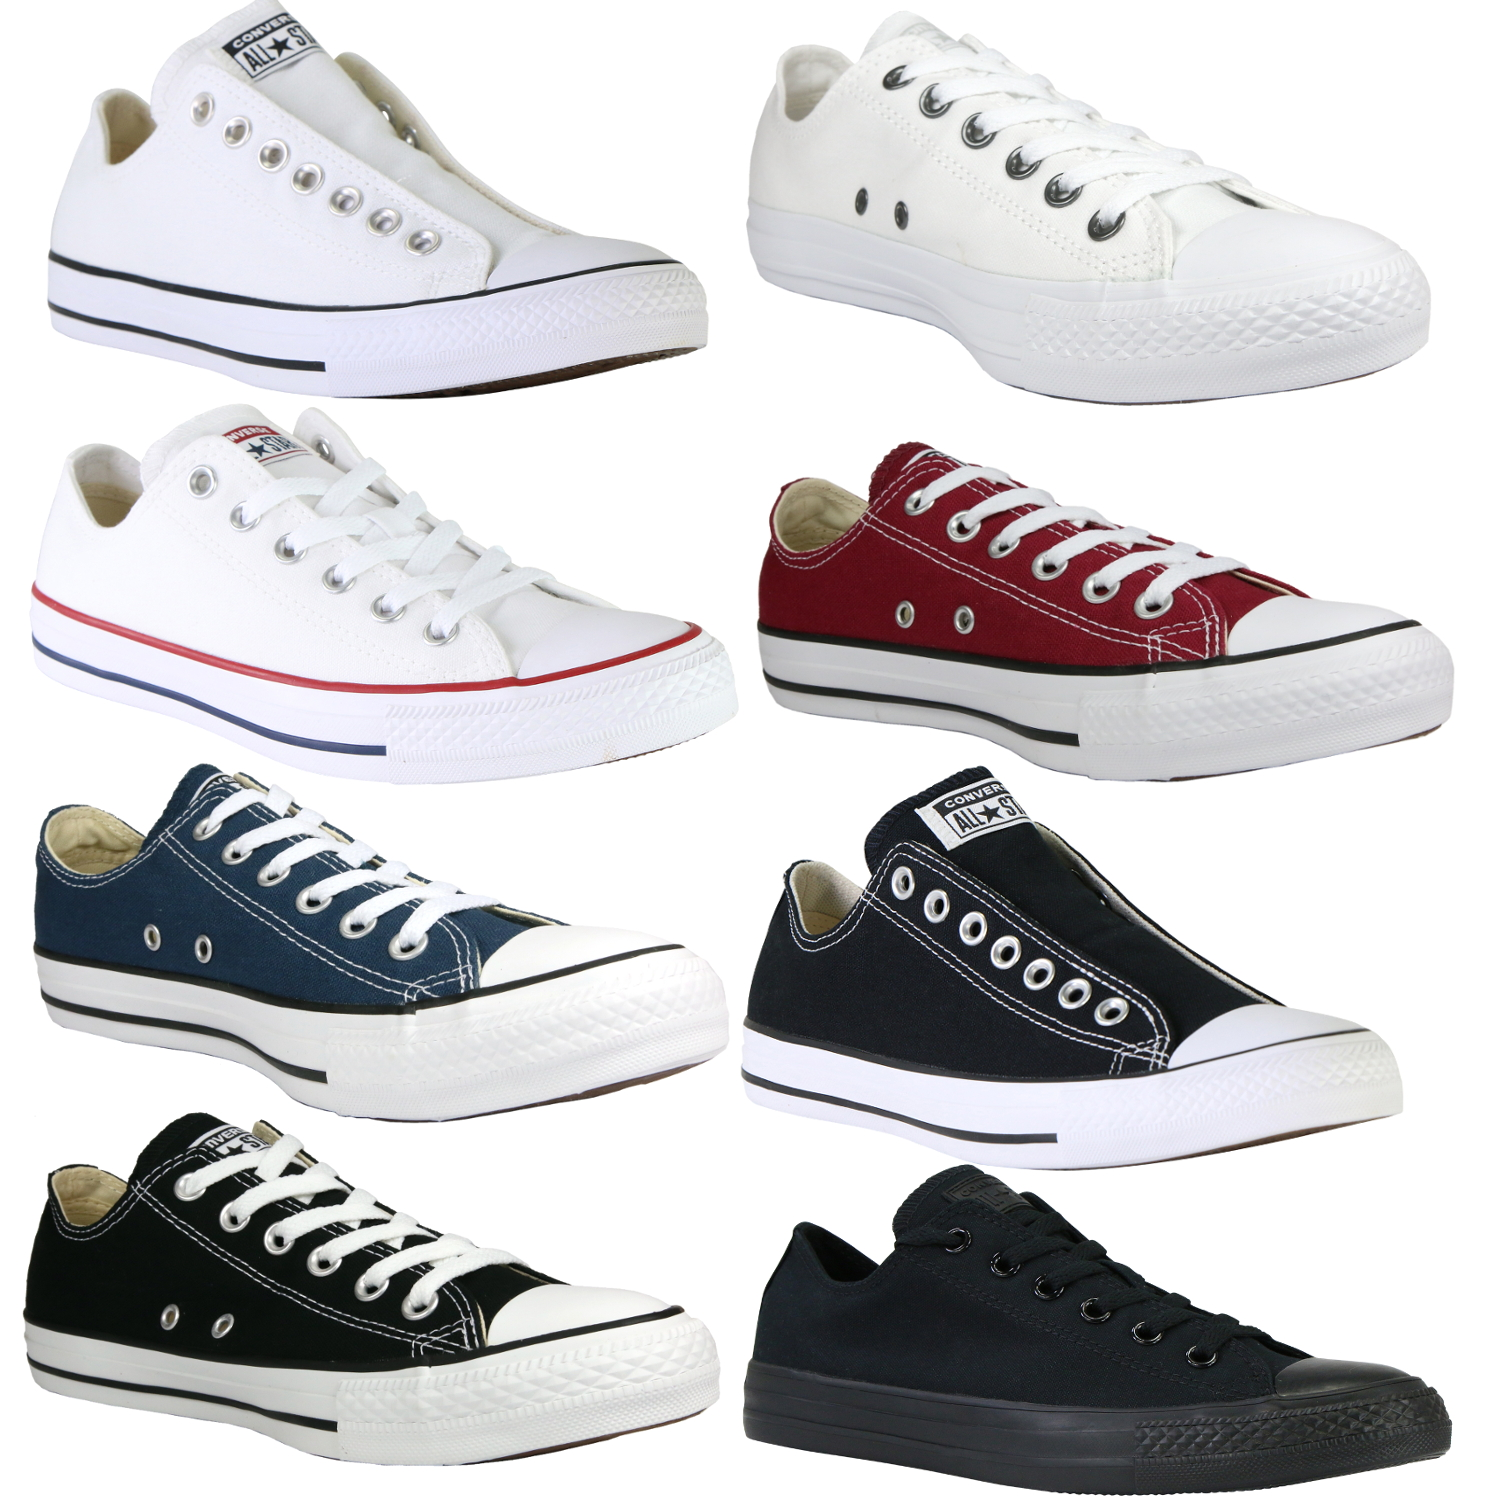 Converse-Chucks-All-Star-OX-Canvas-Schuhe-Sneaker-diverse-Farben